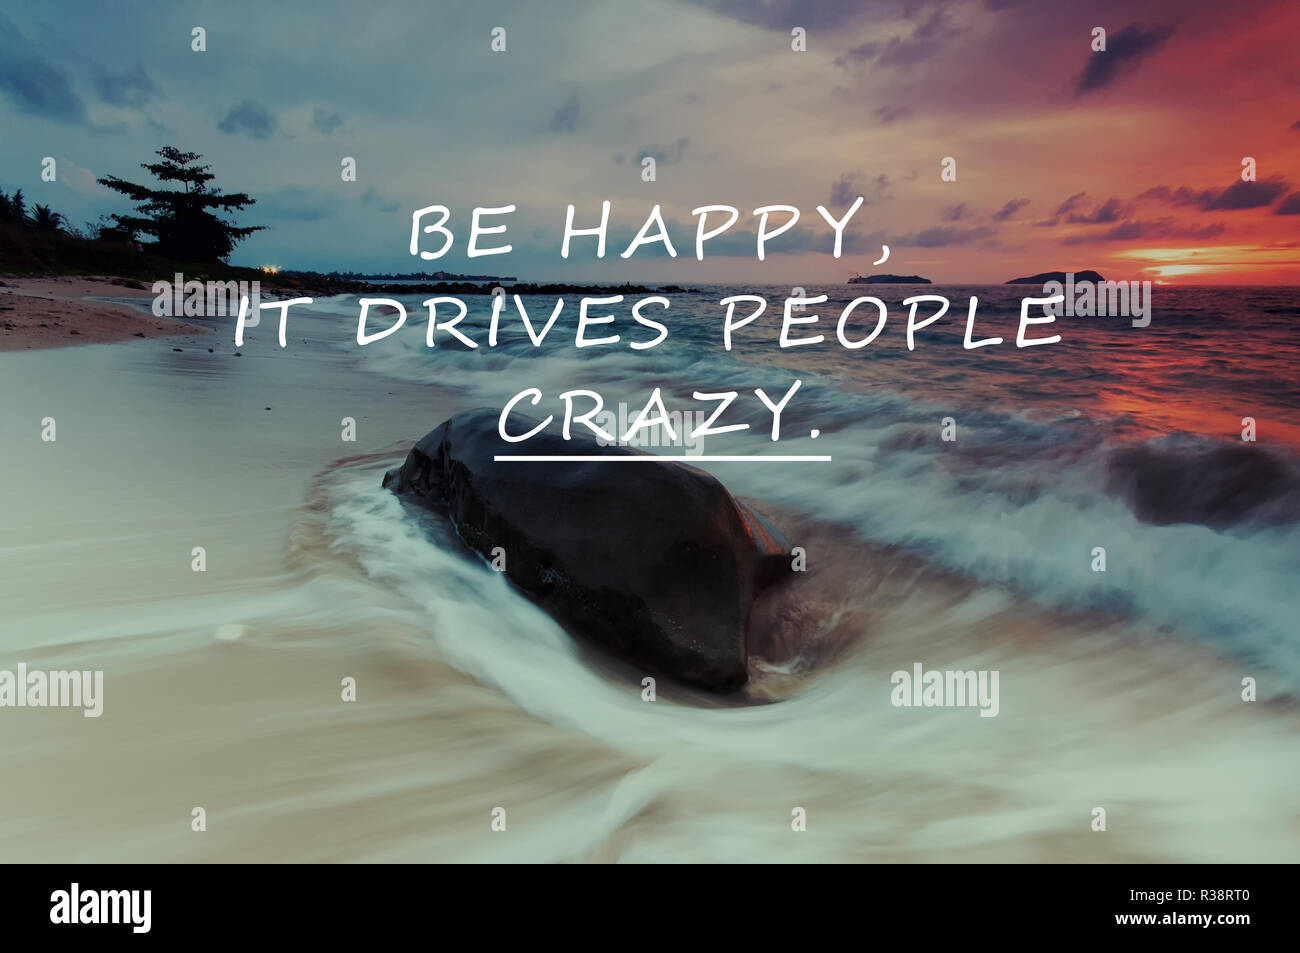 Inspirational Life Quotes Be Happy It Drives People Crazy Sunset